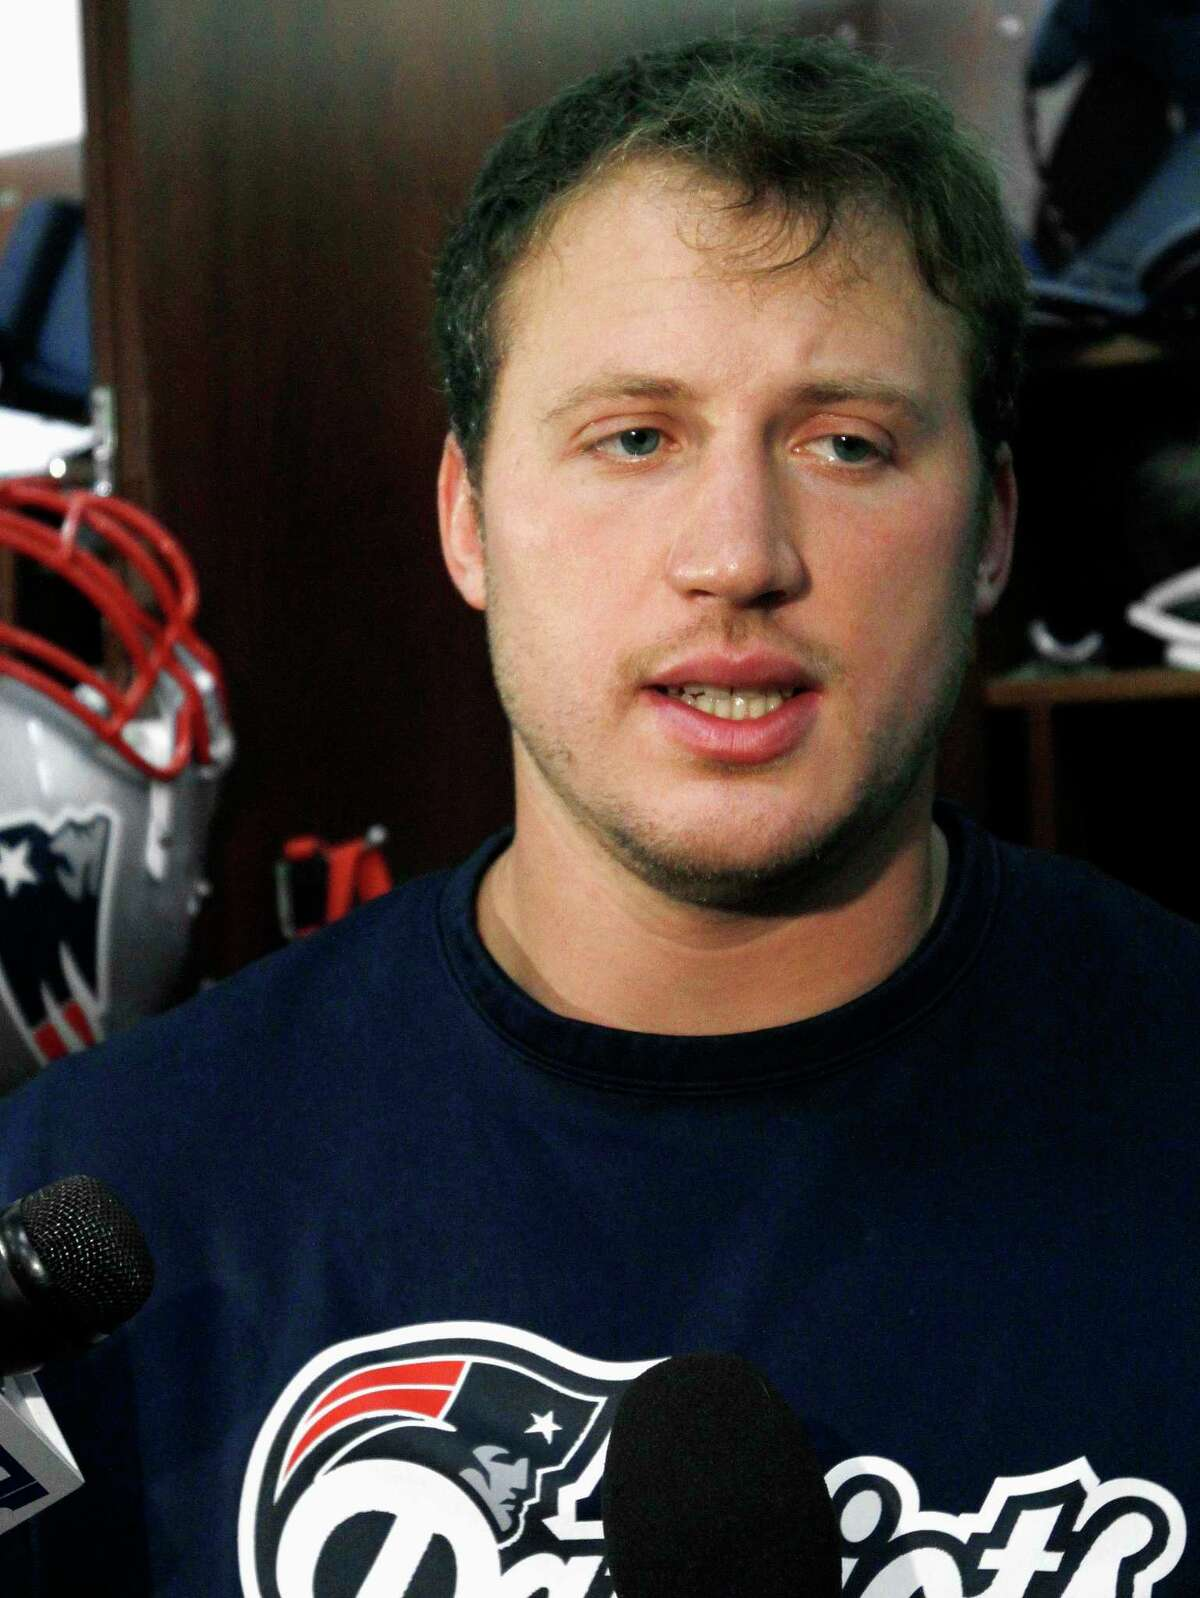 New England Patriots left tackle Nate Solder was injured in Sunday's game against the Cowboys in Dallas.